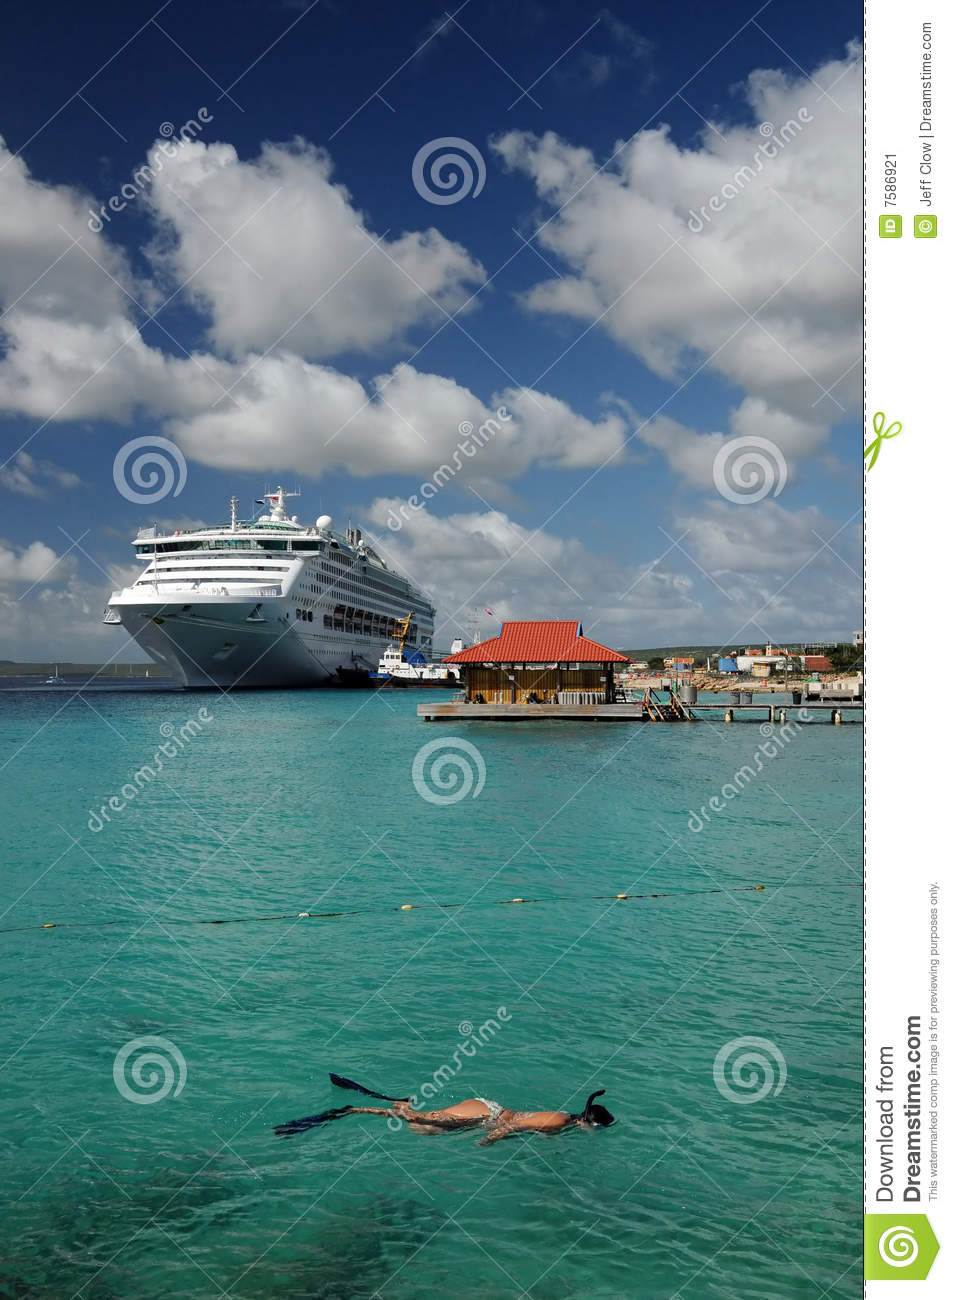 Snorkeling Lady on a Cruise